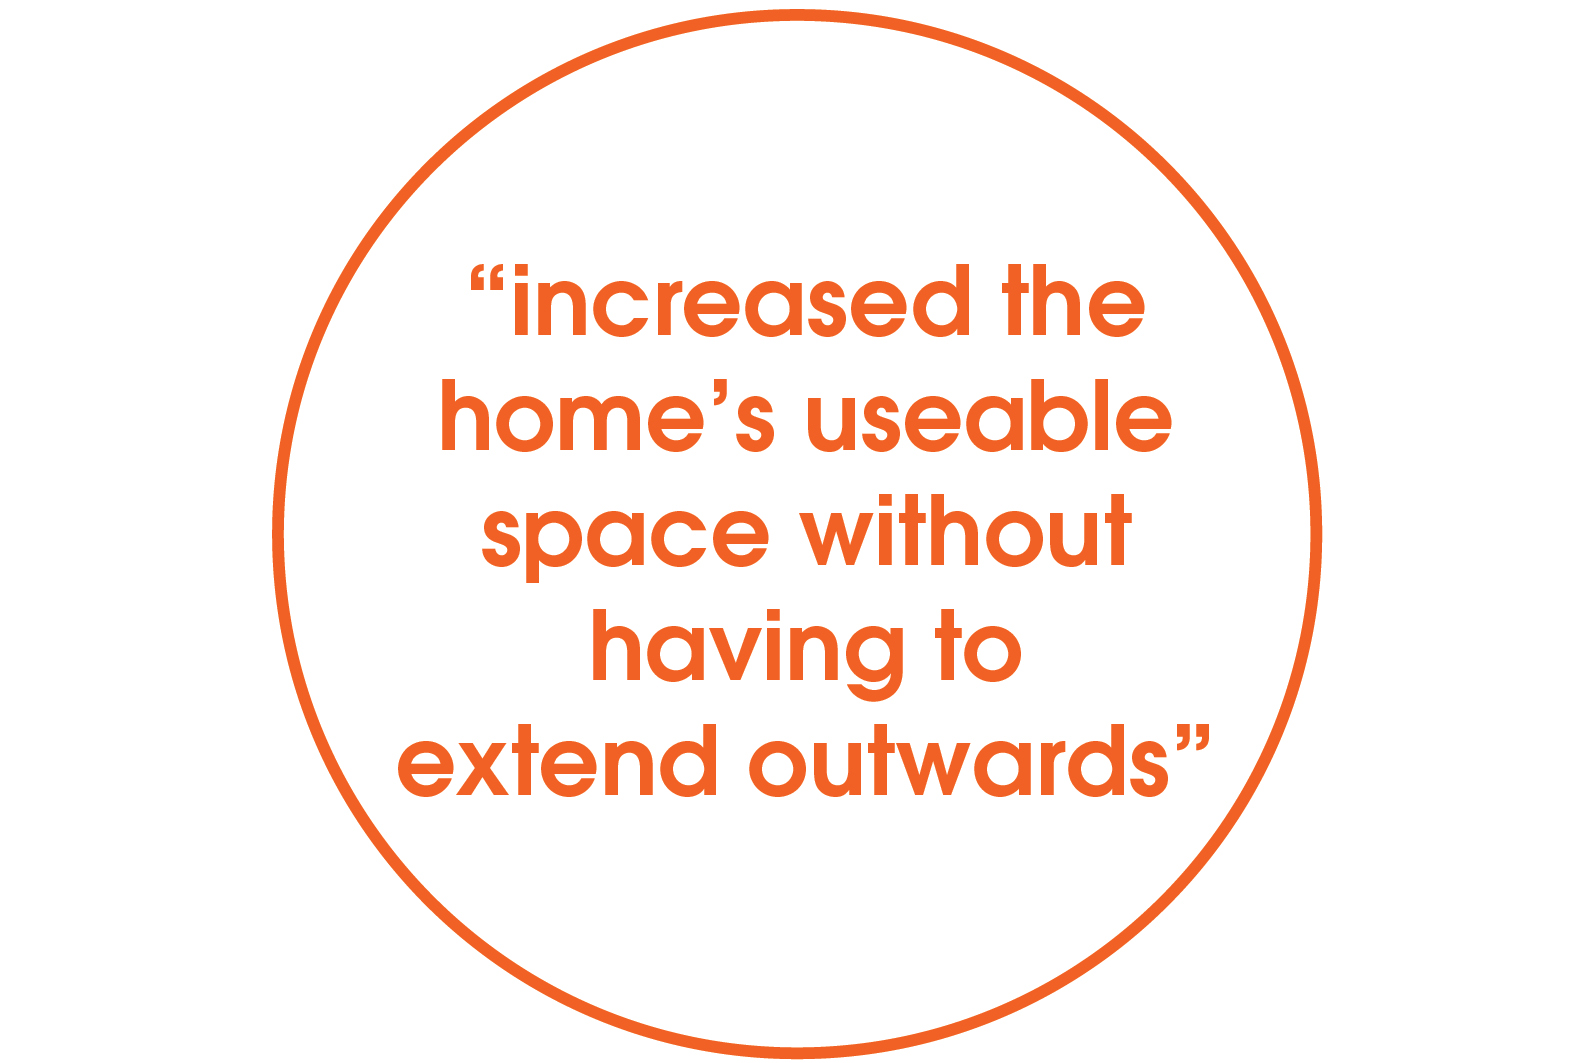 increased the home's useable space without having to extend outwards